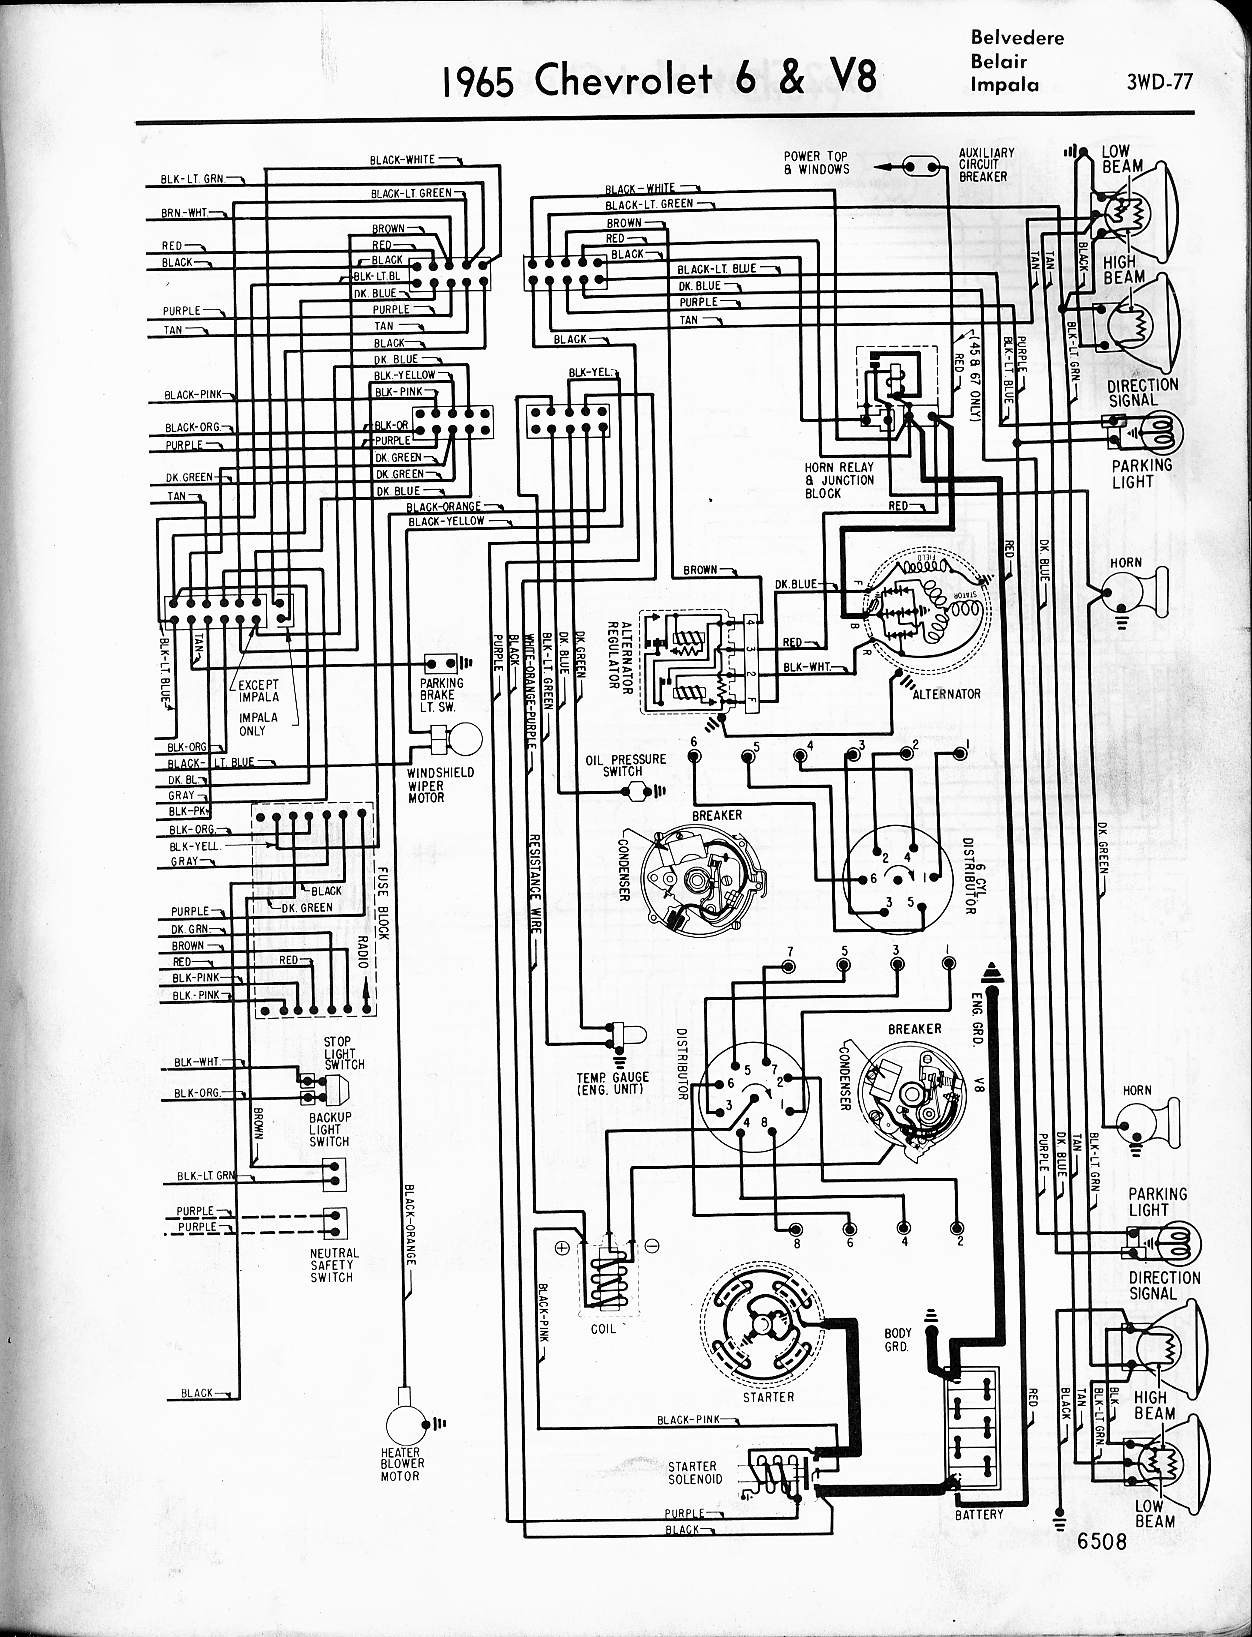 El Camino Wiring Diagram 1967 El Camino Wiring Diagram Free Example Electrical Wiring Diagram • Of El Camino Wiring Diagram